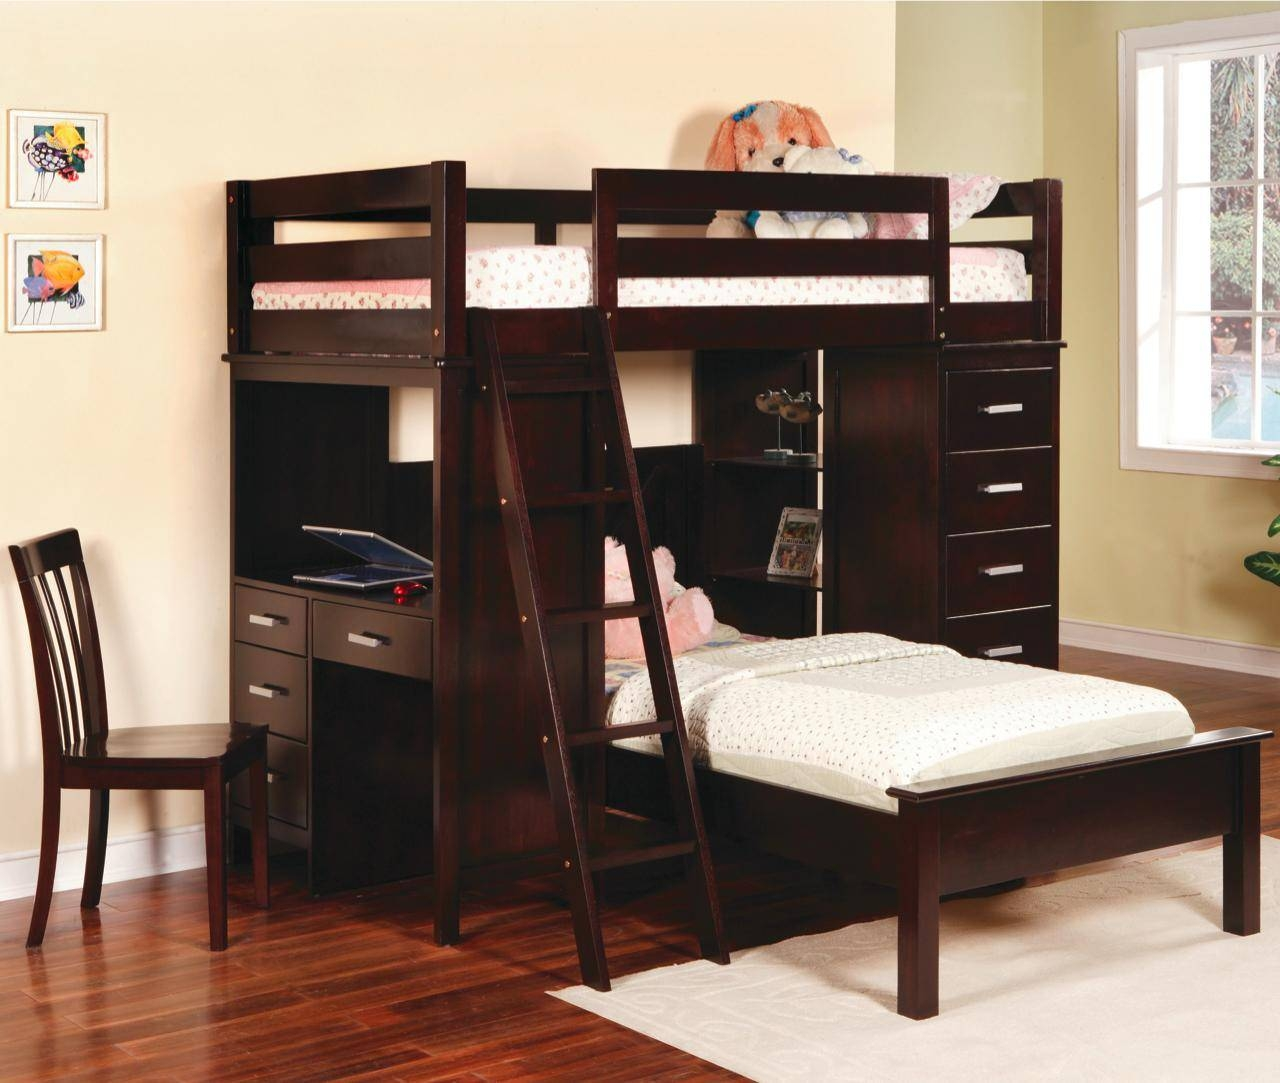 Twin Loft Beds With Desk Bedroom Furniture Nightstands Media in Desk Sideboards (Image 29 of 30)